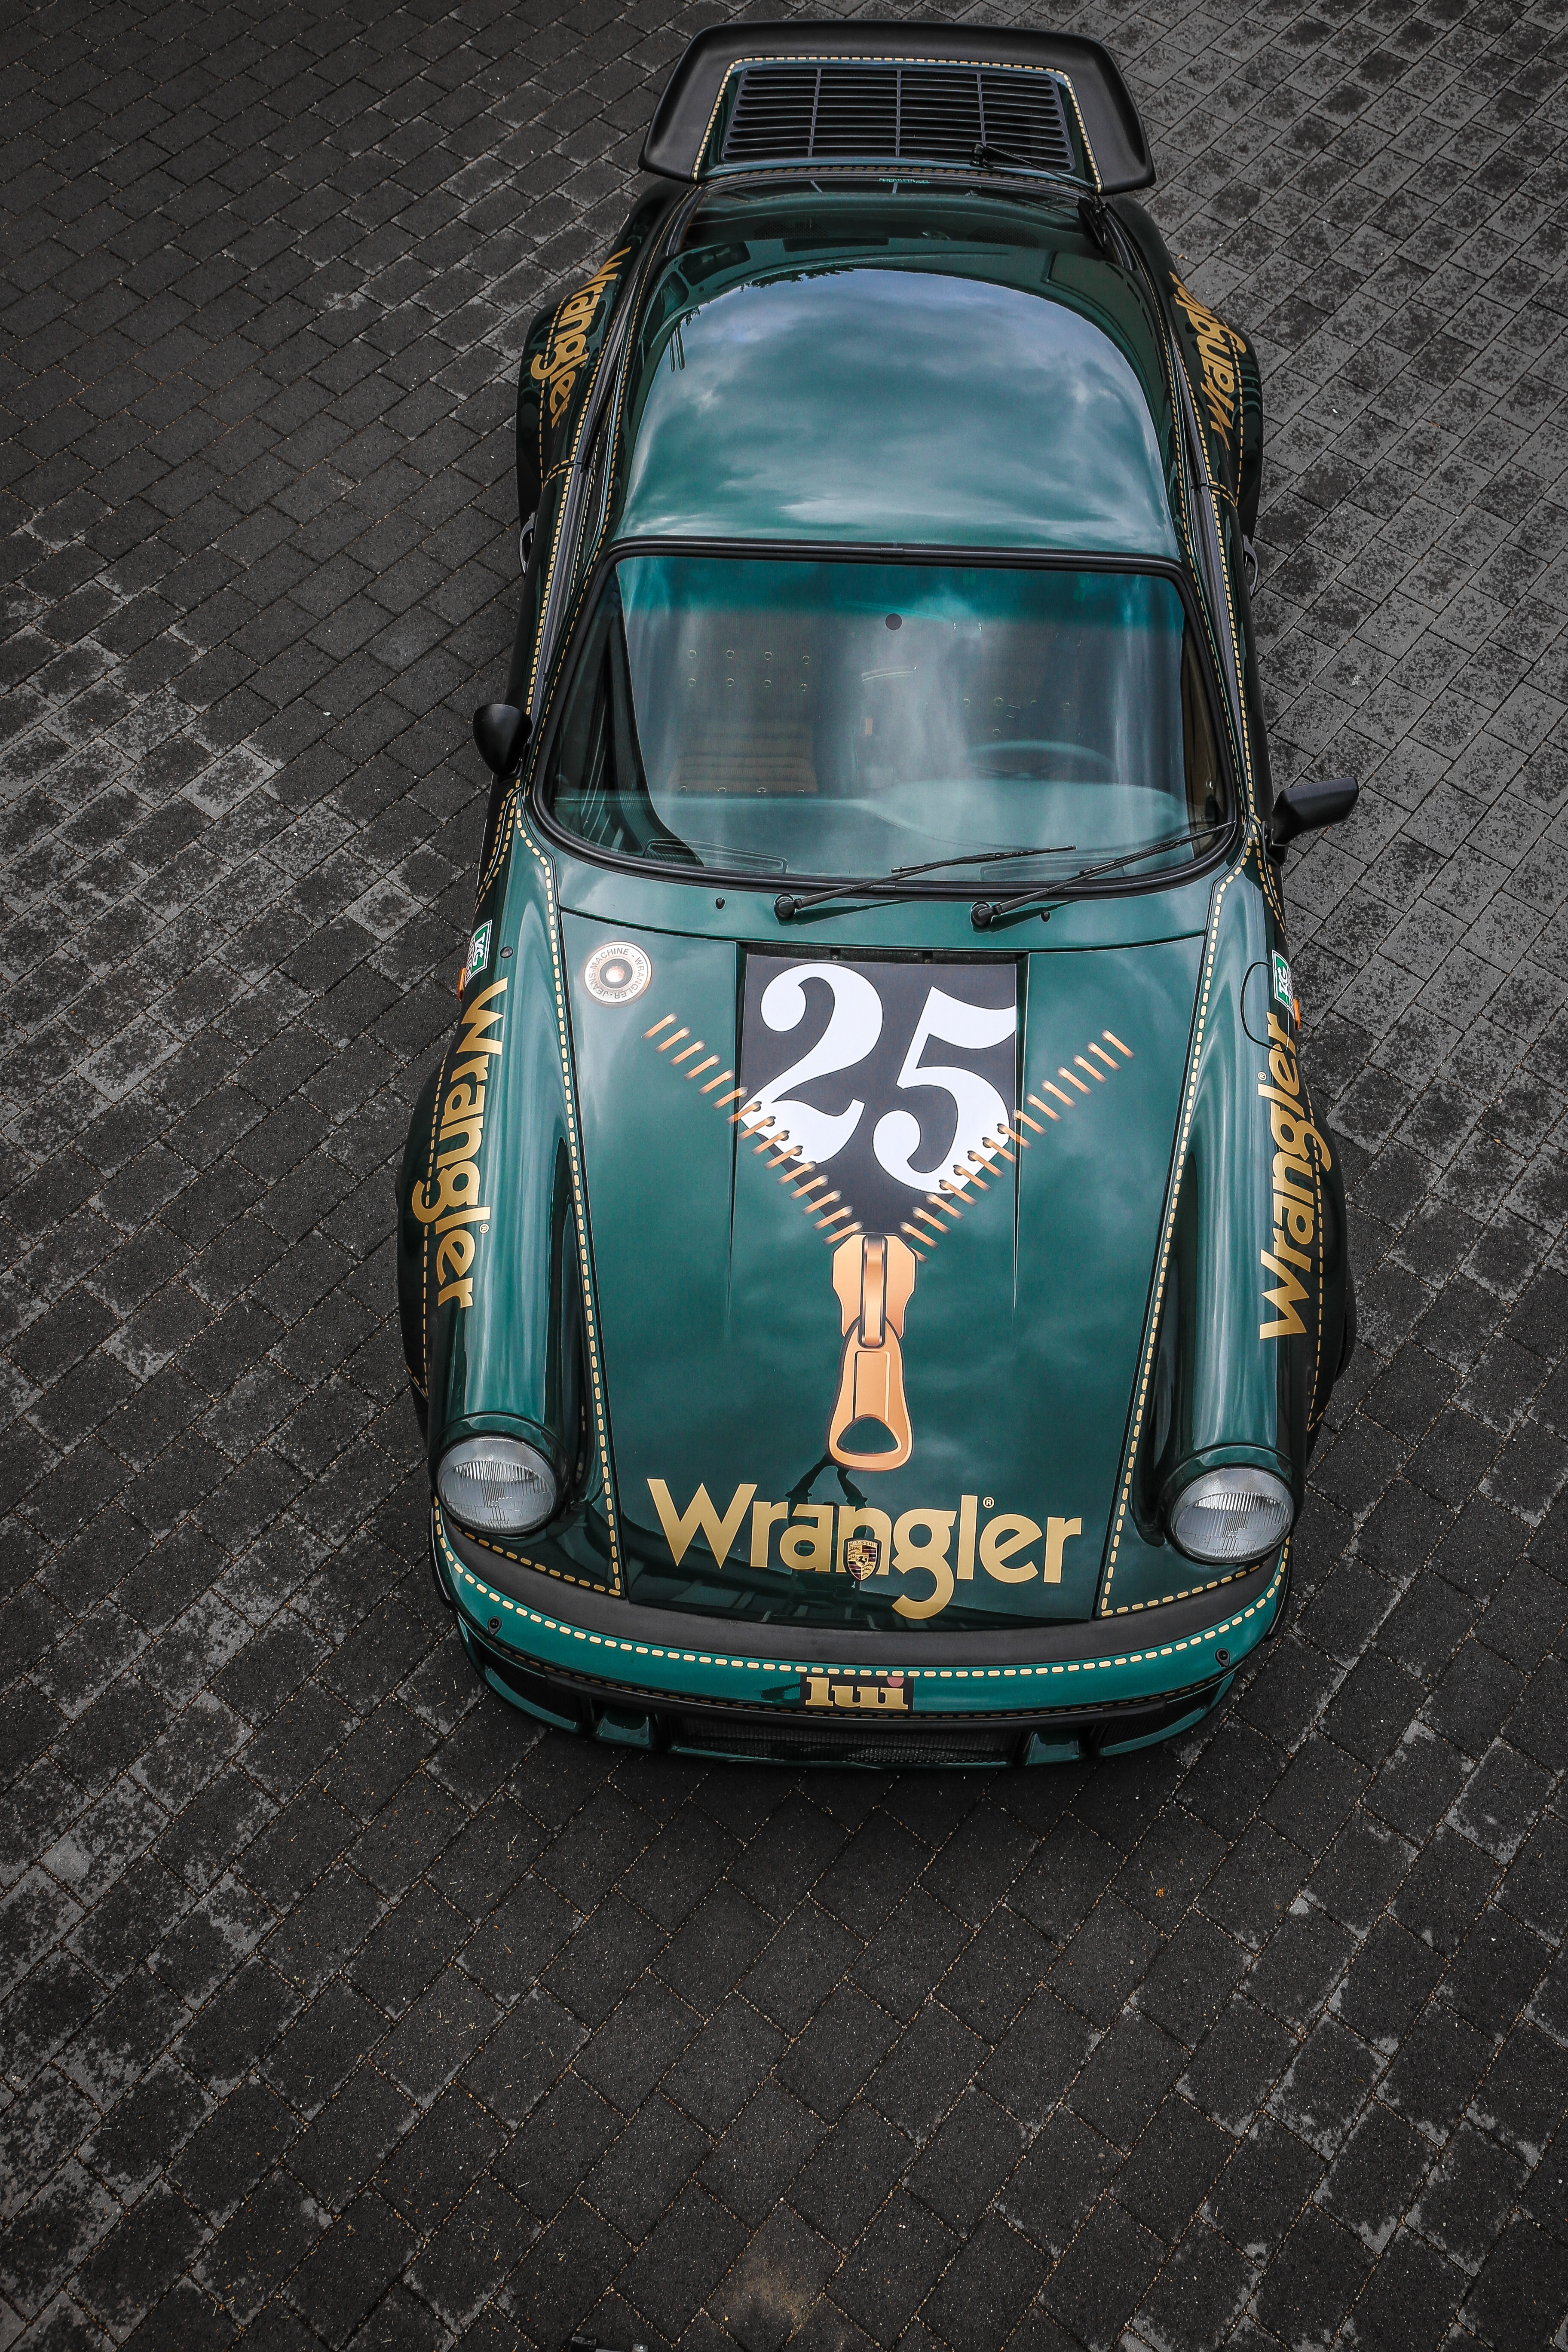 teal Wrangler 25 die-cast coupe toy